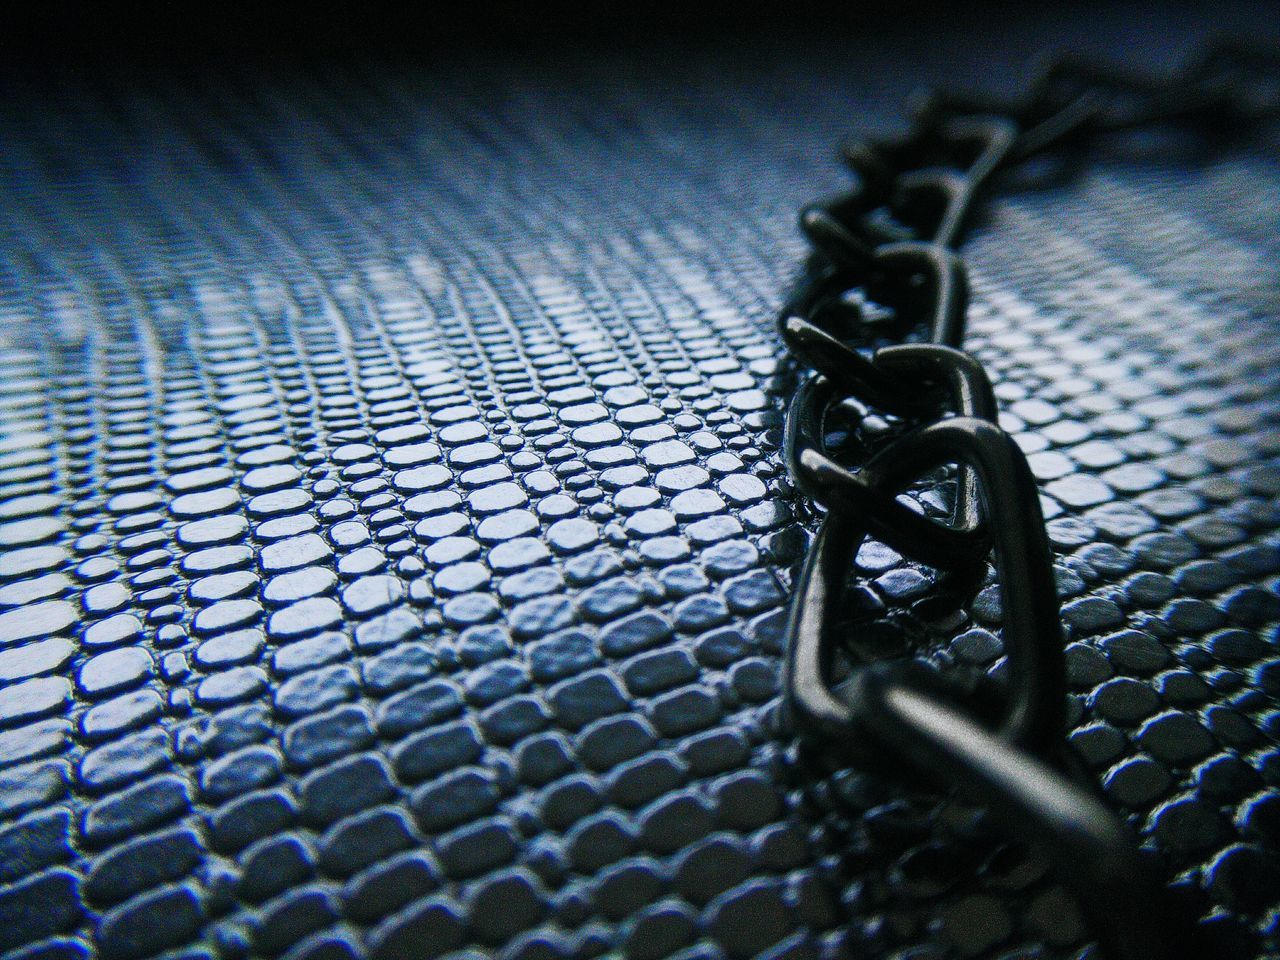 metal, selective focus, chain, no people, close-up, indoors, day